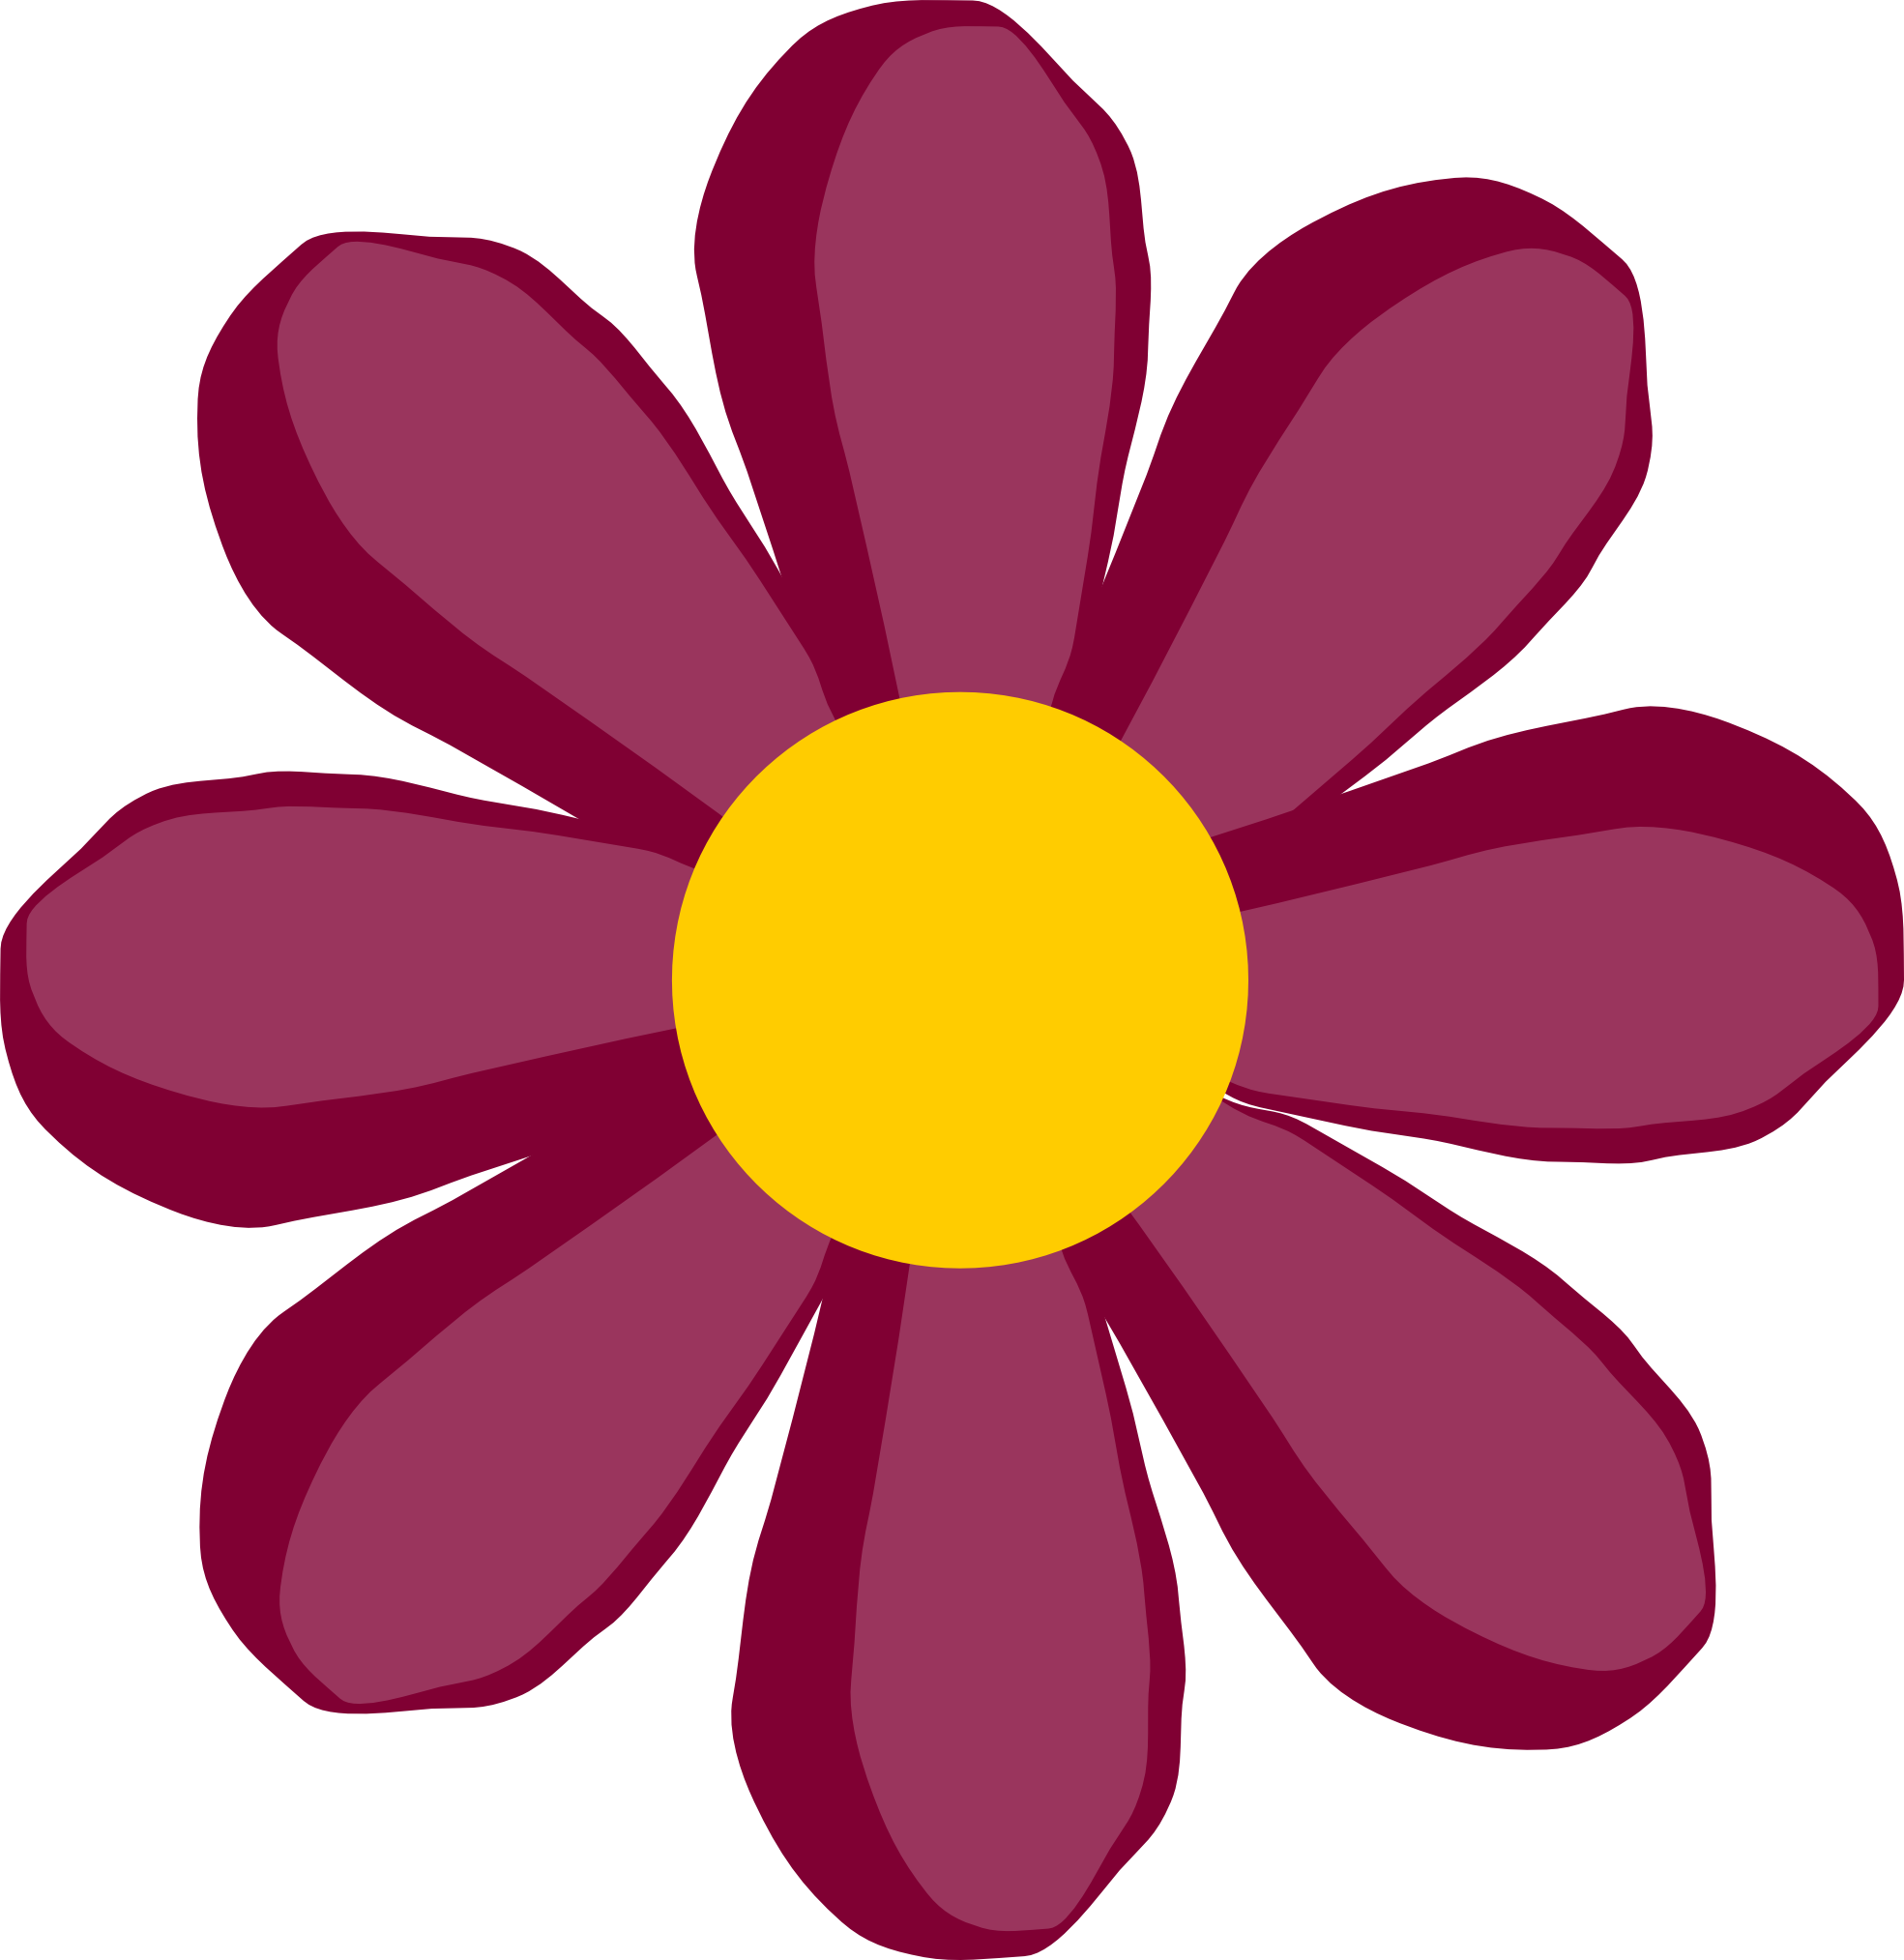 Sales clipart flower. Hippie daisies and flowers